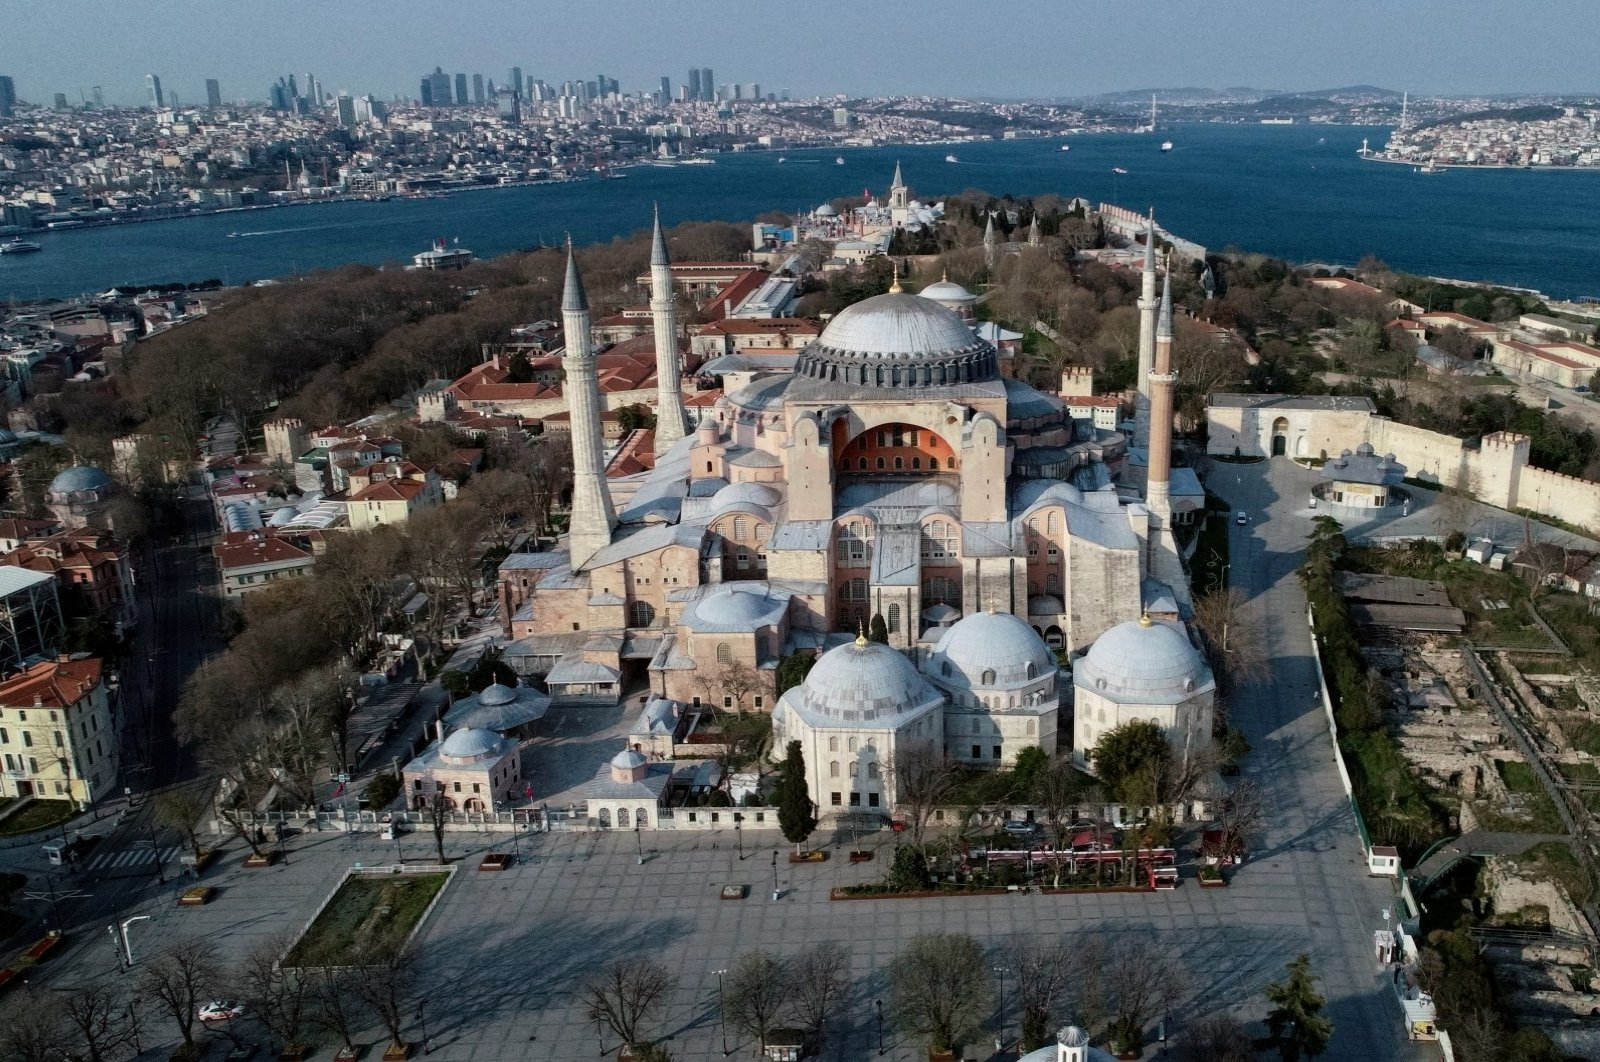 An aerial view of Hagia Sophia Grand Mosque in Istanbul, Turkey, April 11, 2020. (REUTERS PHOTO)